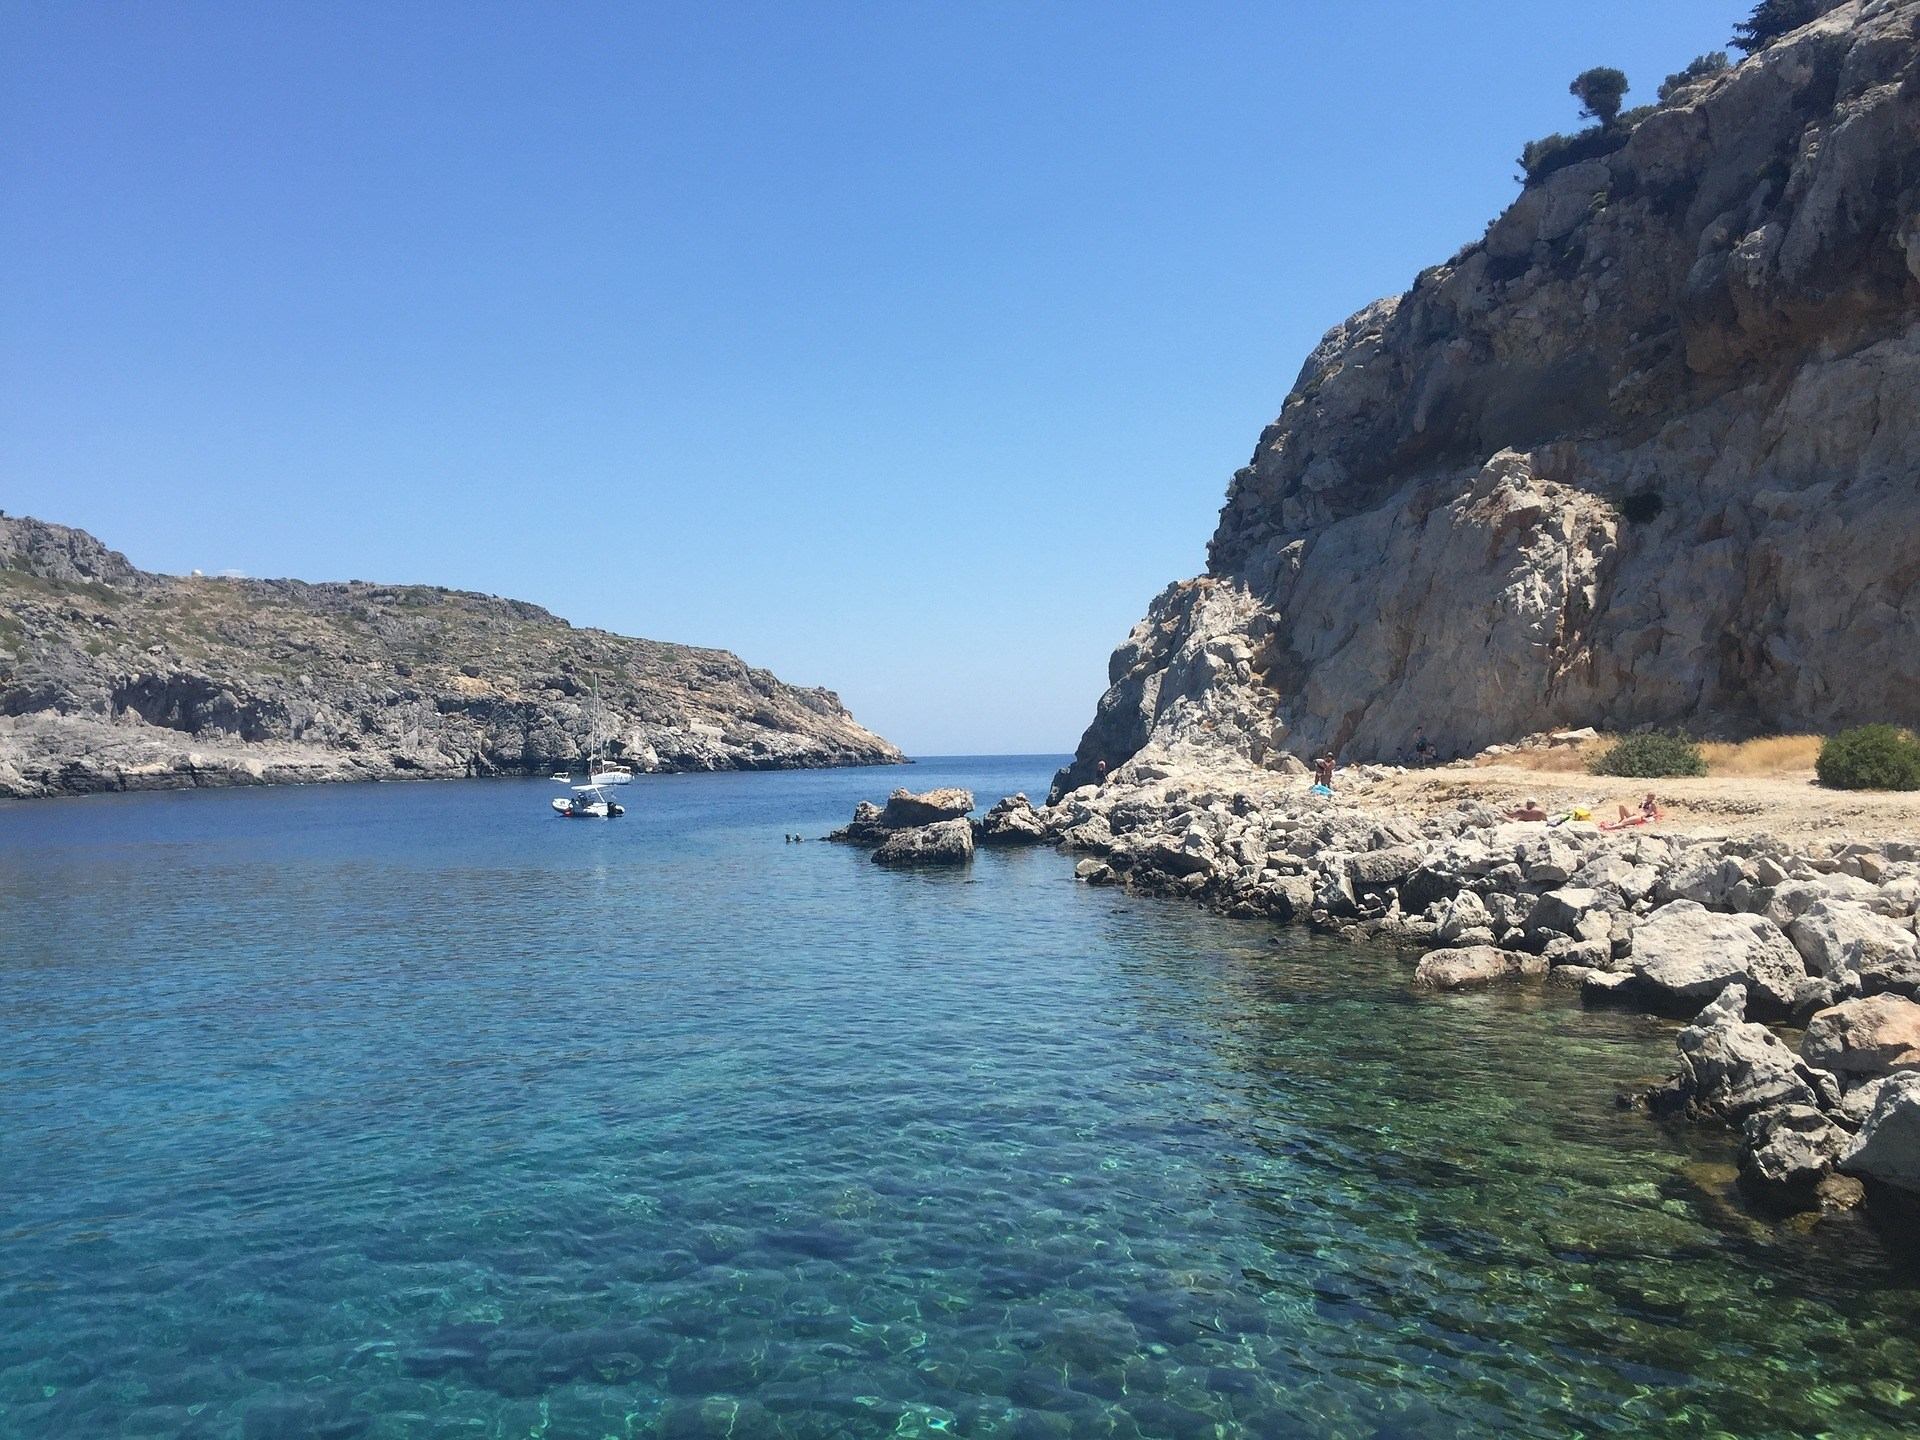 Beach at Faliraki - Where to Stay in Rhodes for Nightlife